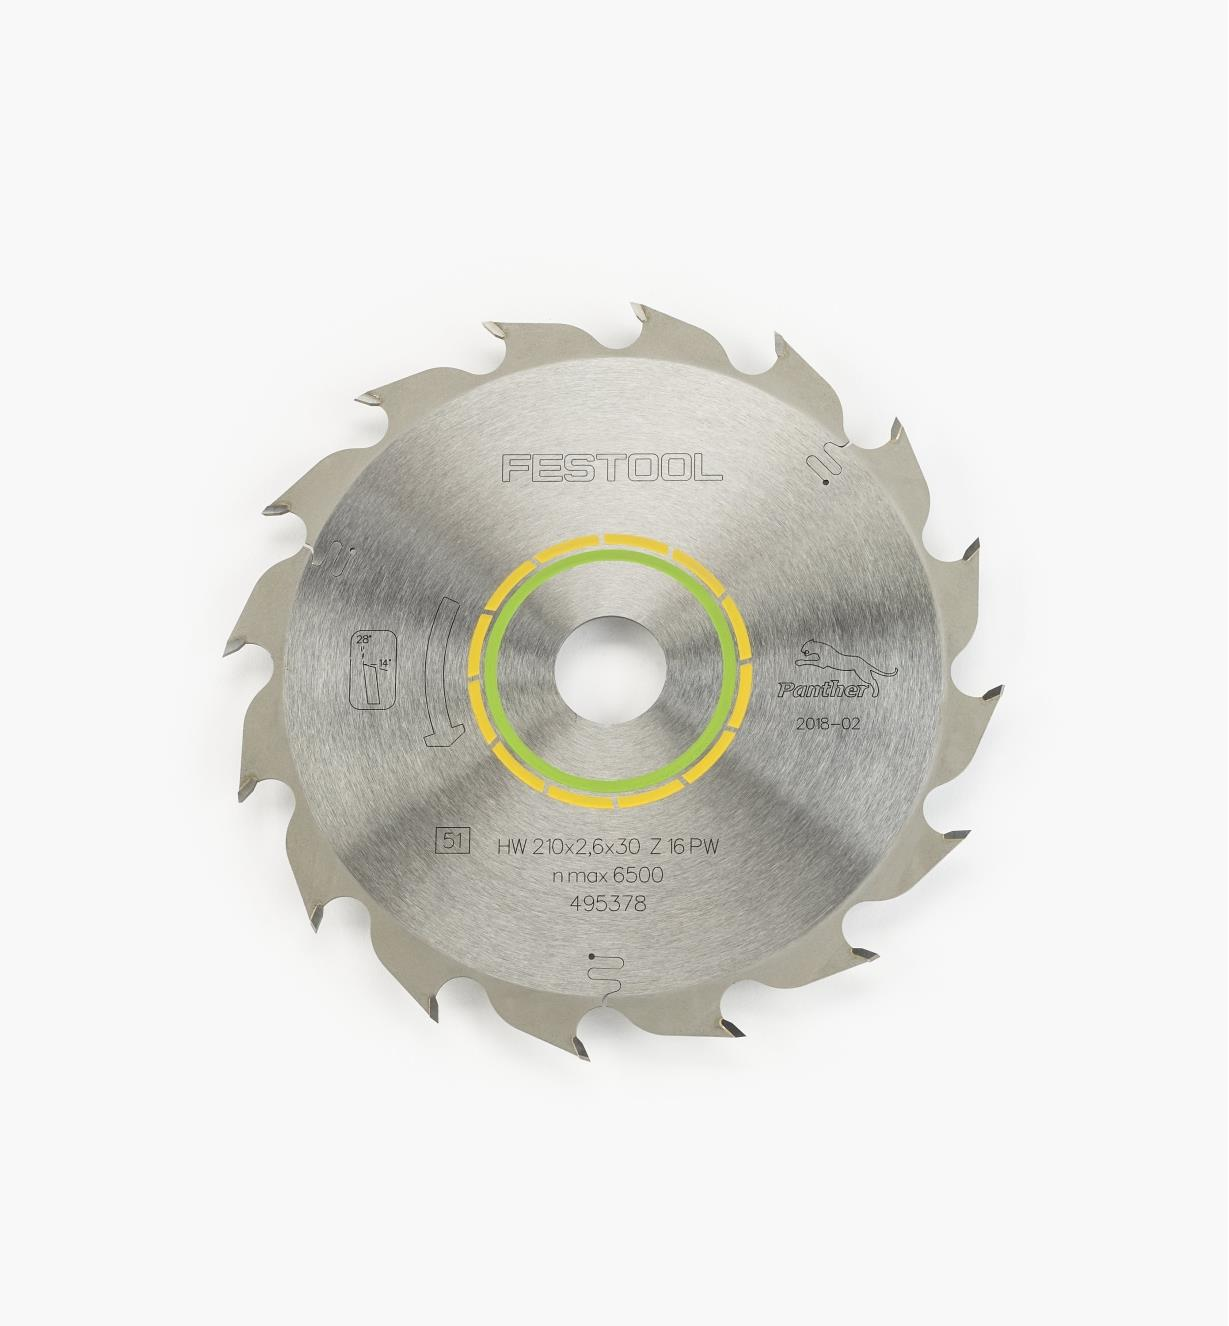 ZA495378 - Panther TS 75 Saw Blade